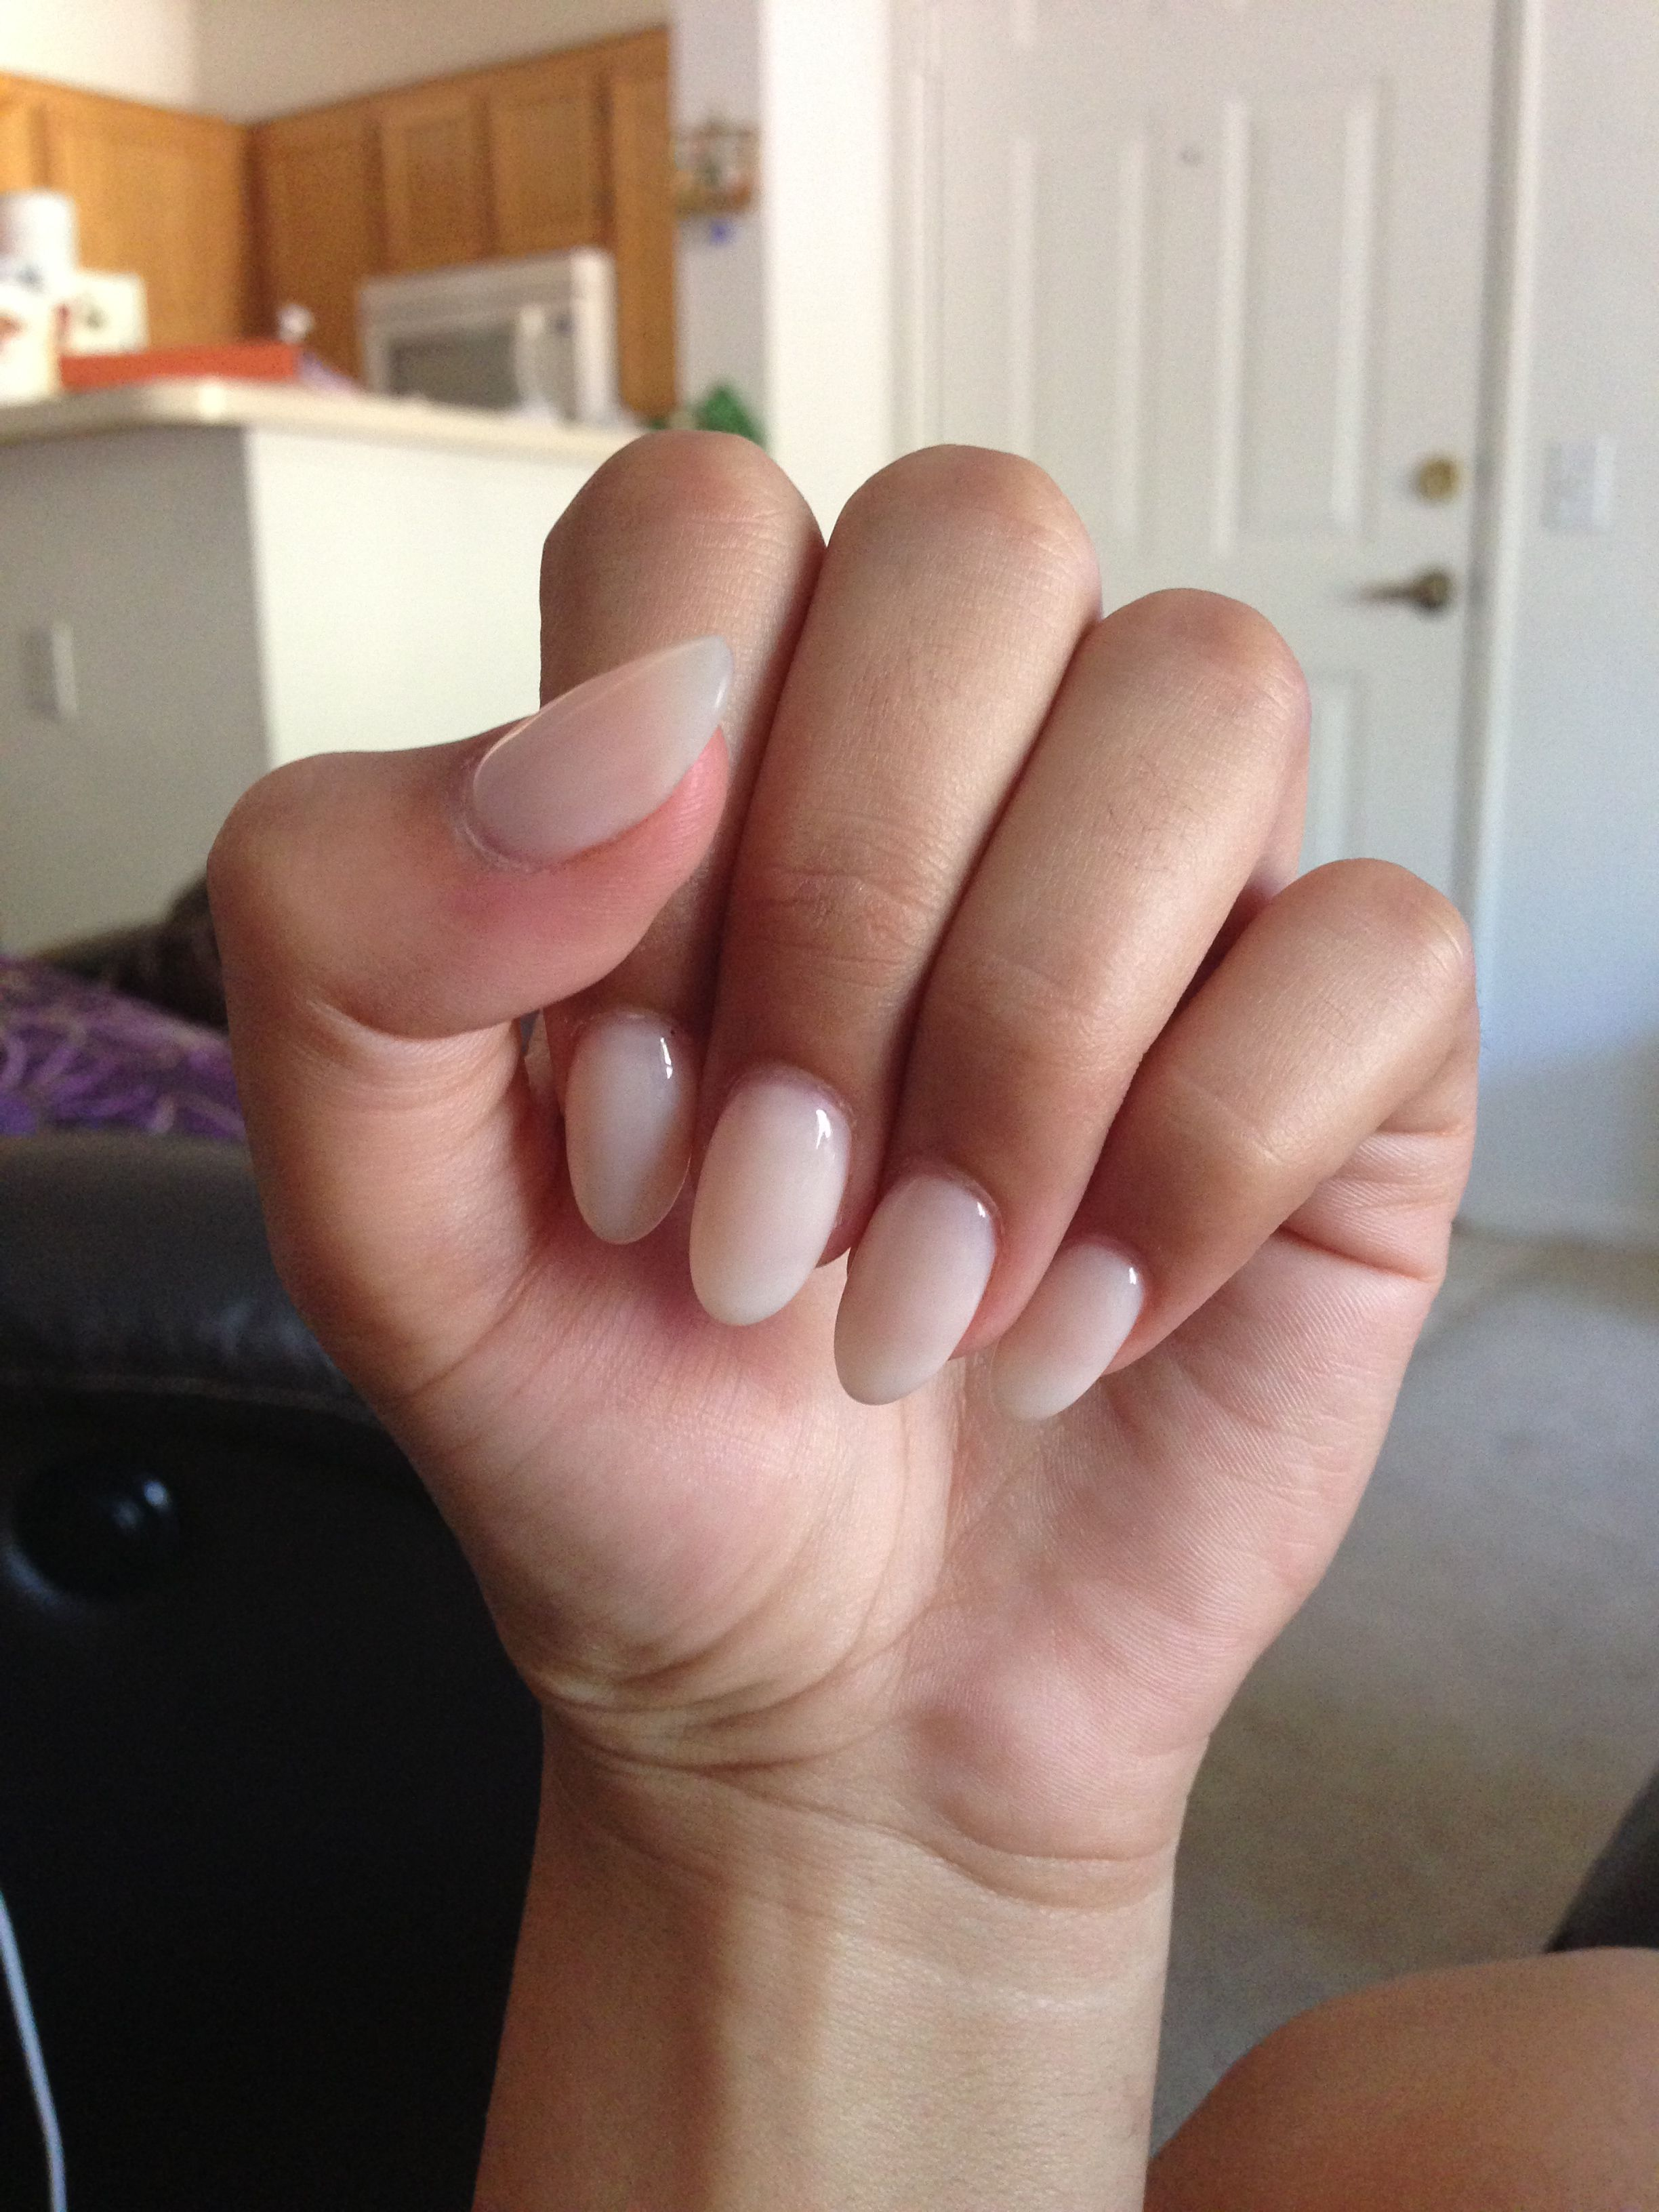 Got my nude stiletto nails done on Sunday! Love them! Such a great transition from Summer to Fall!(: